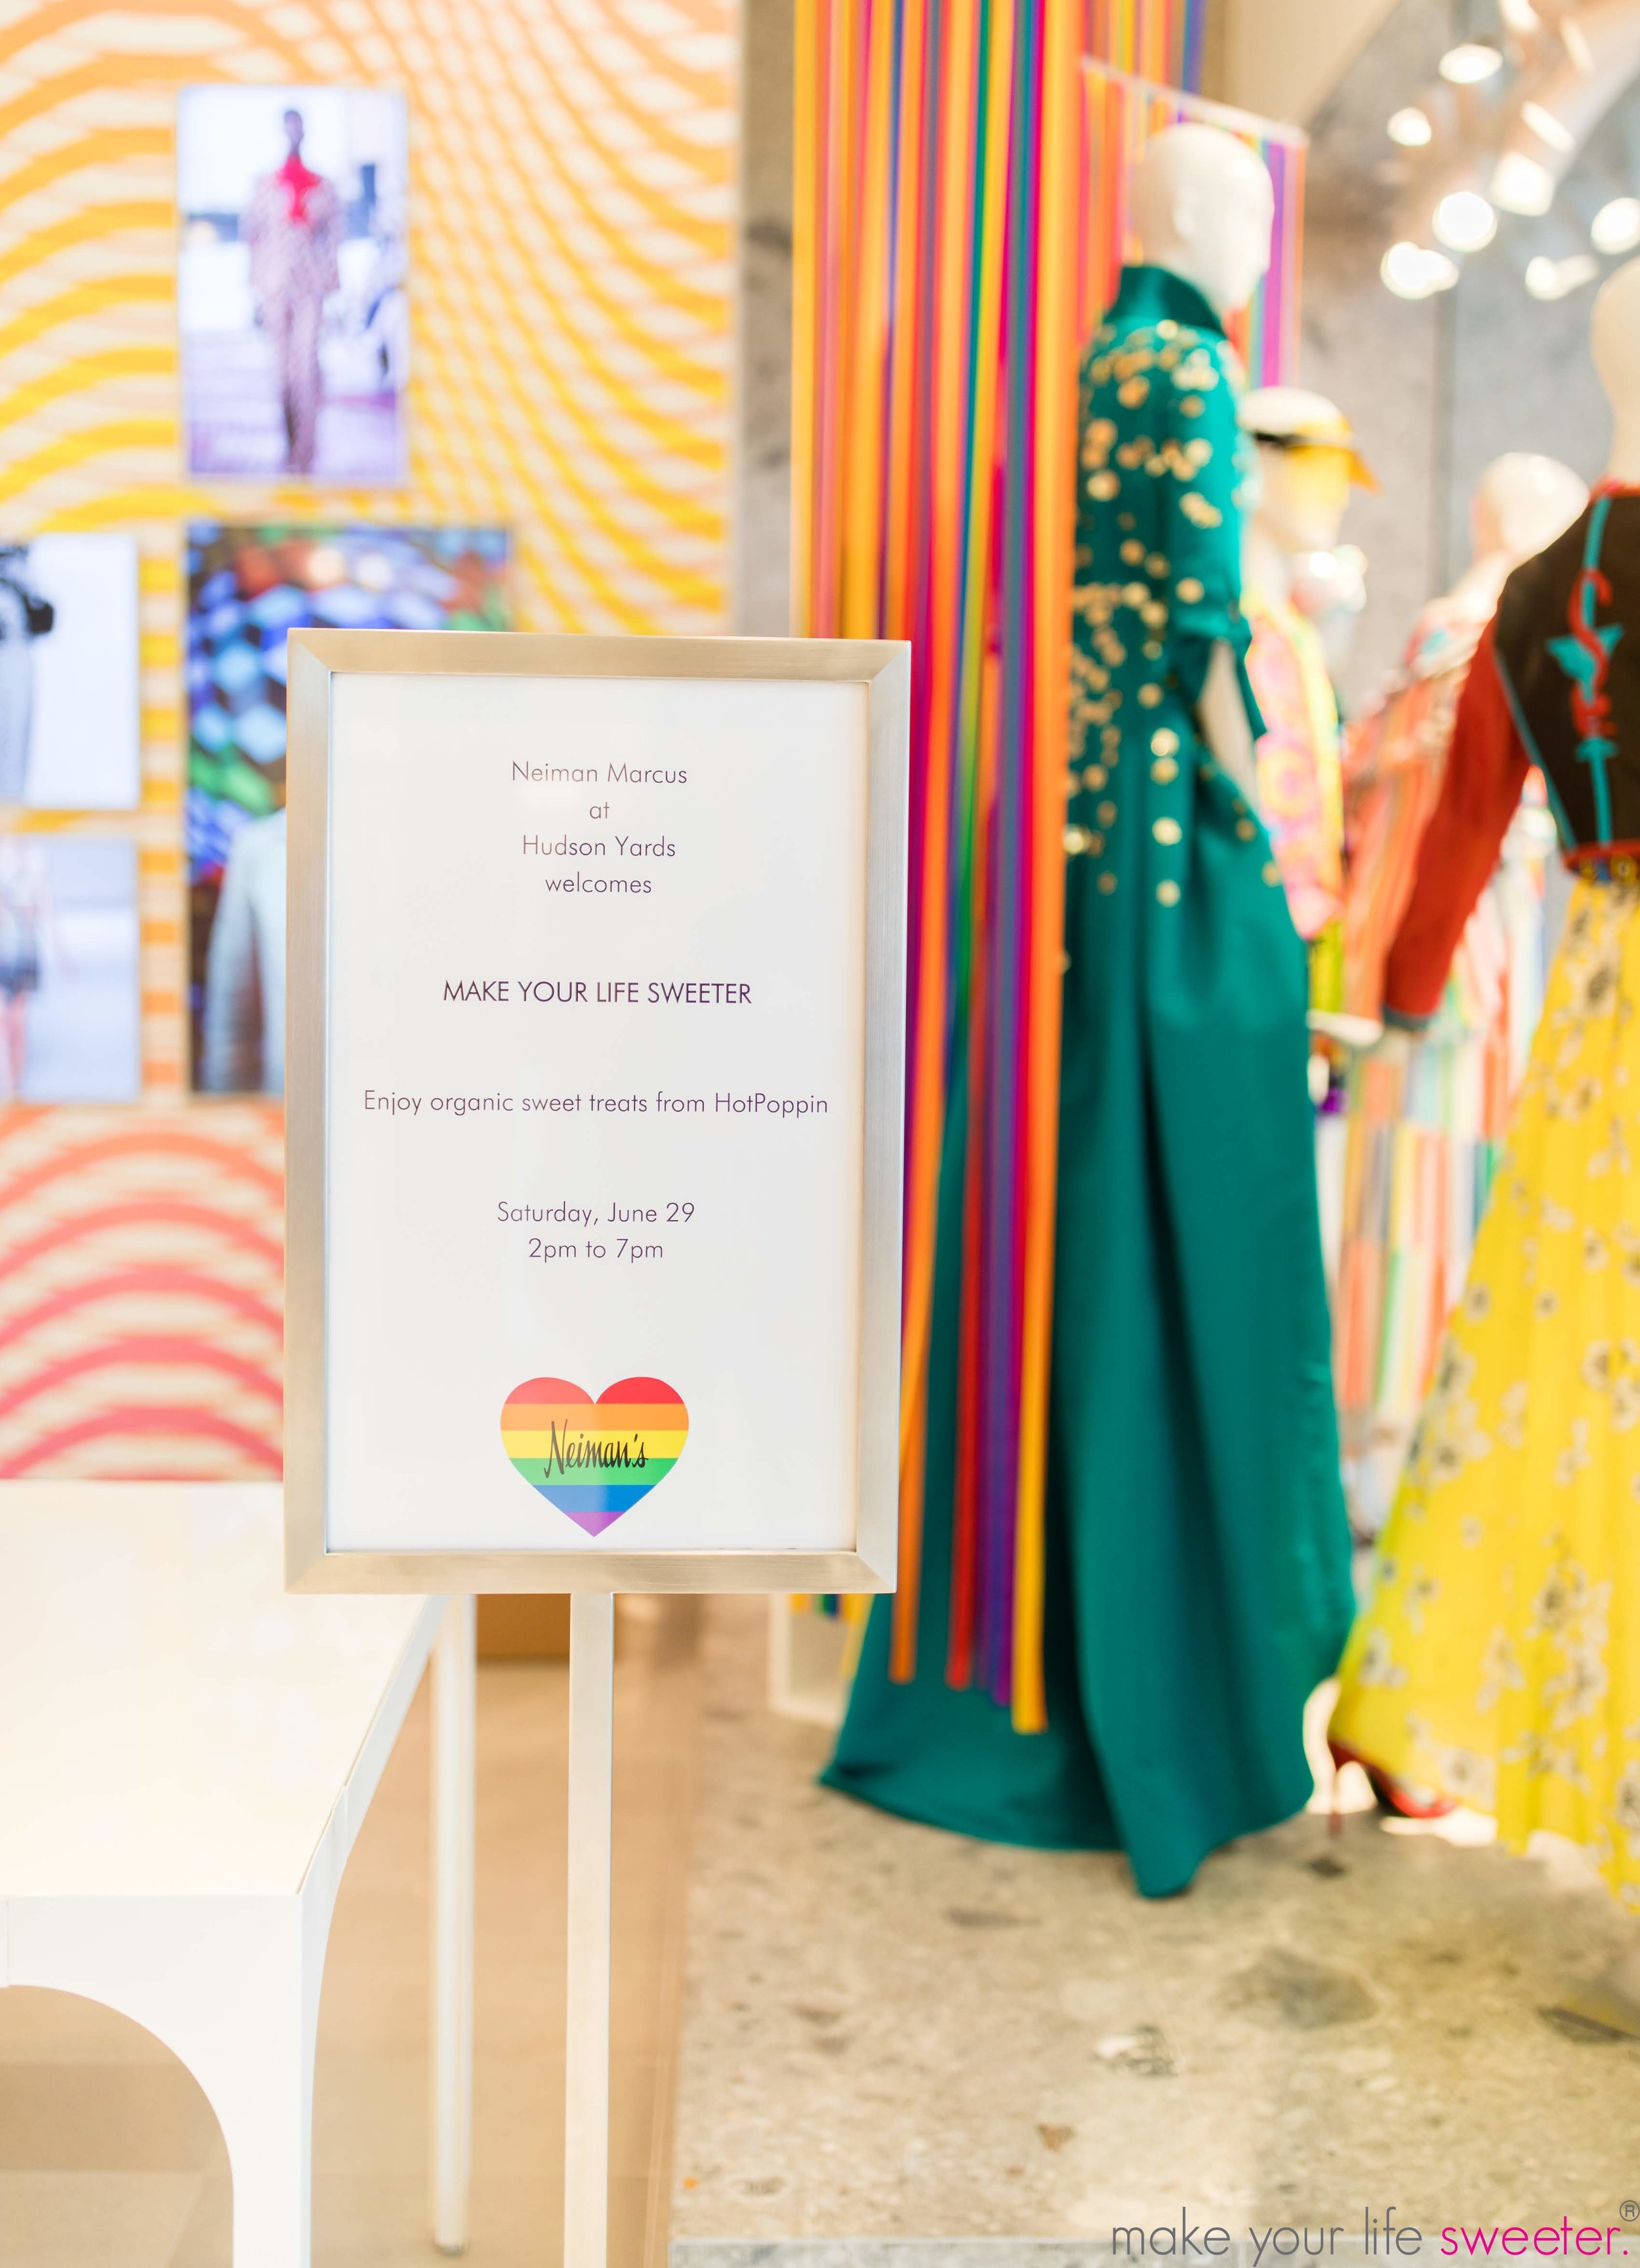 Make Your Life Sweeter Events - Neiman Marcus Hudson Yards Pride Event